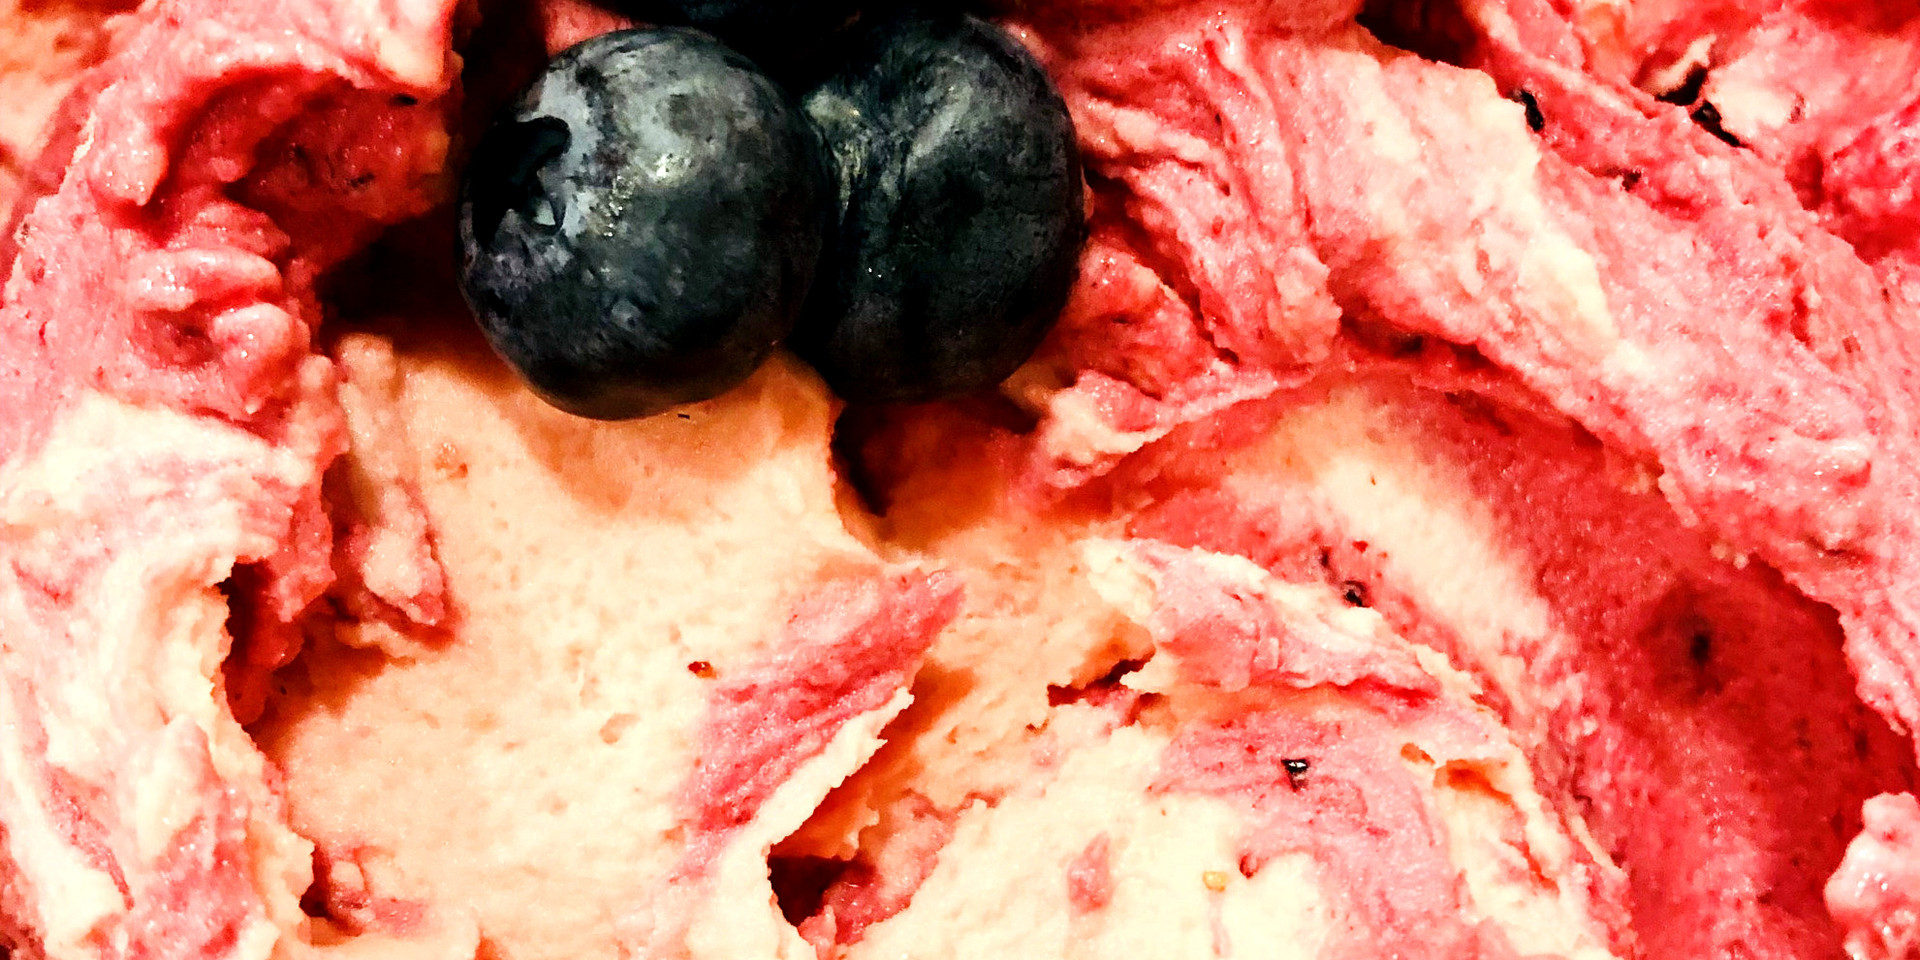 Blueberry-Strawberry1_edited.jpg